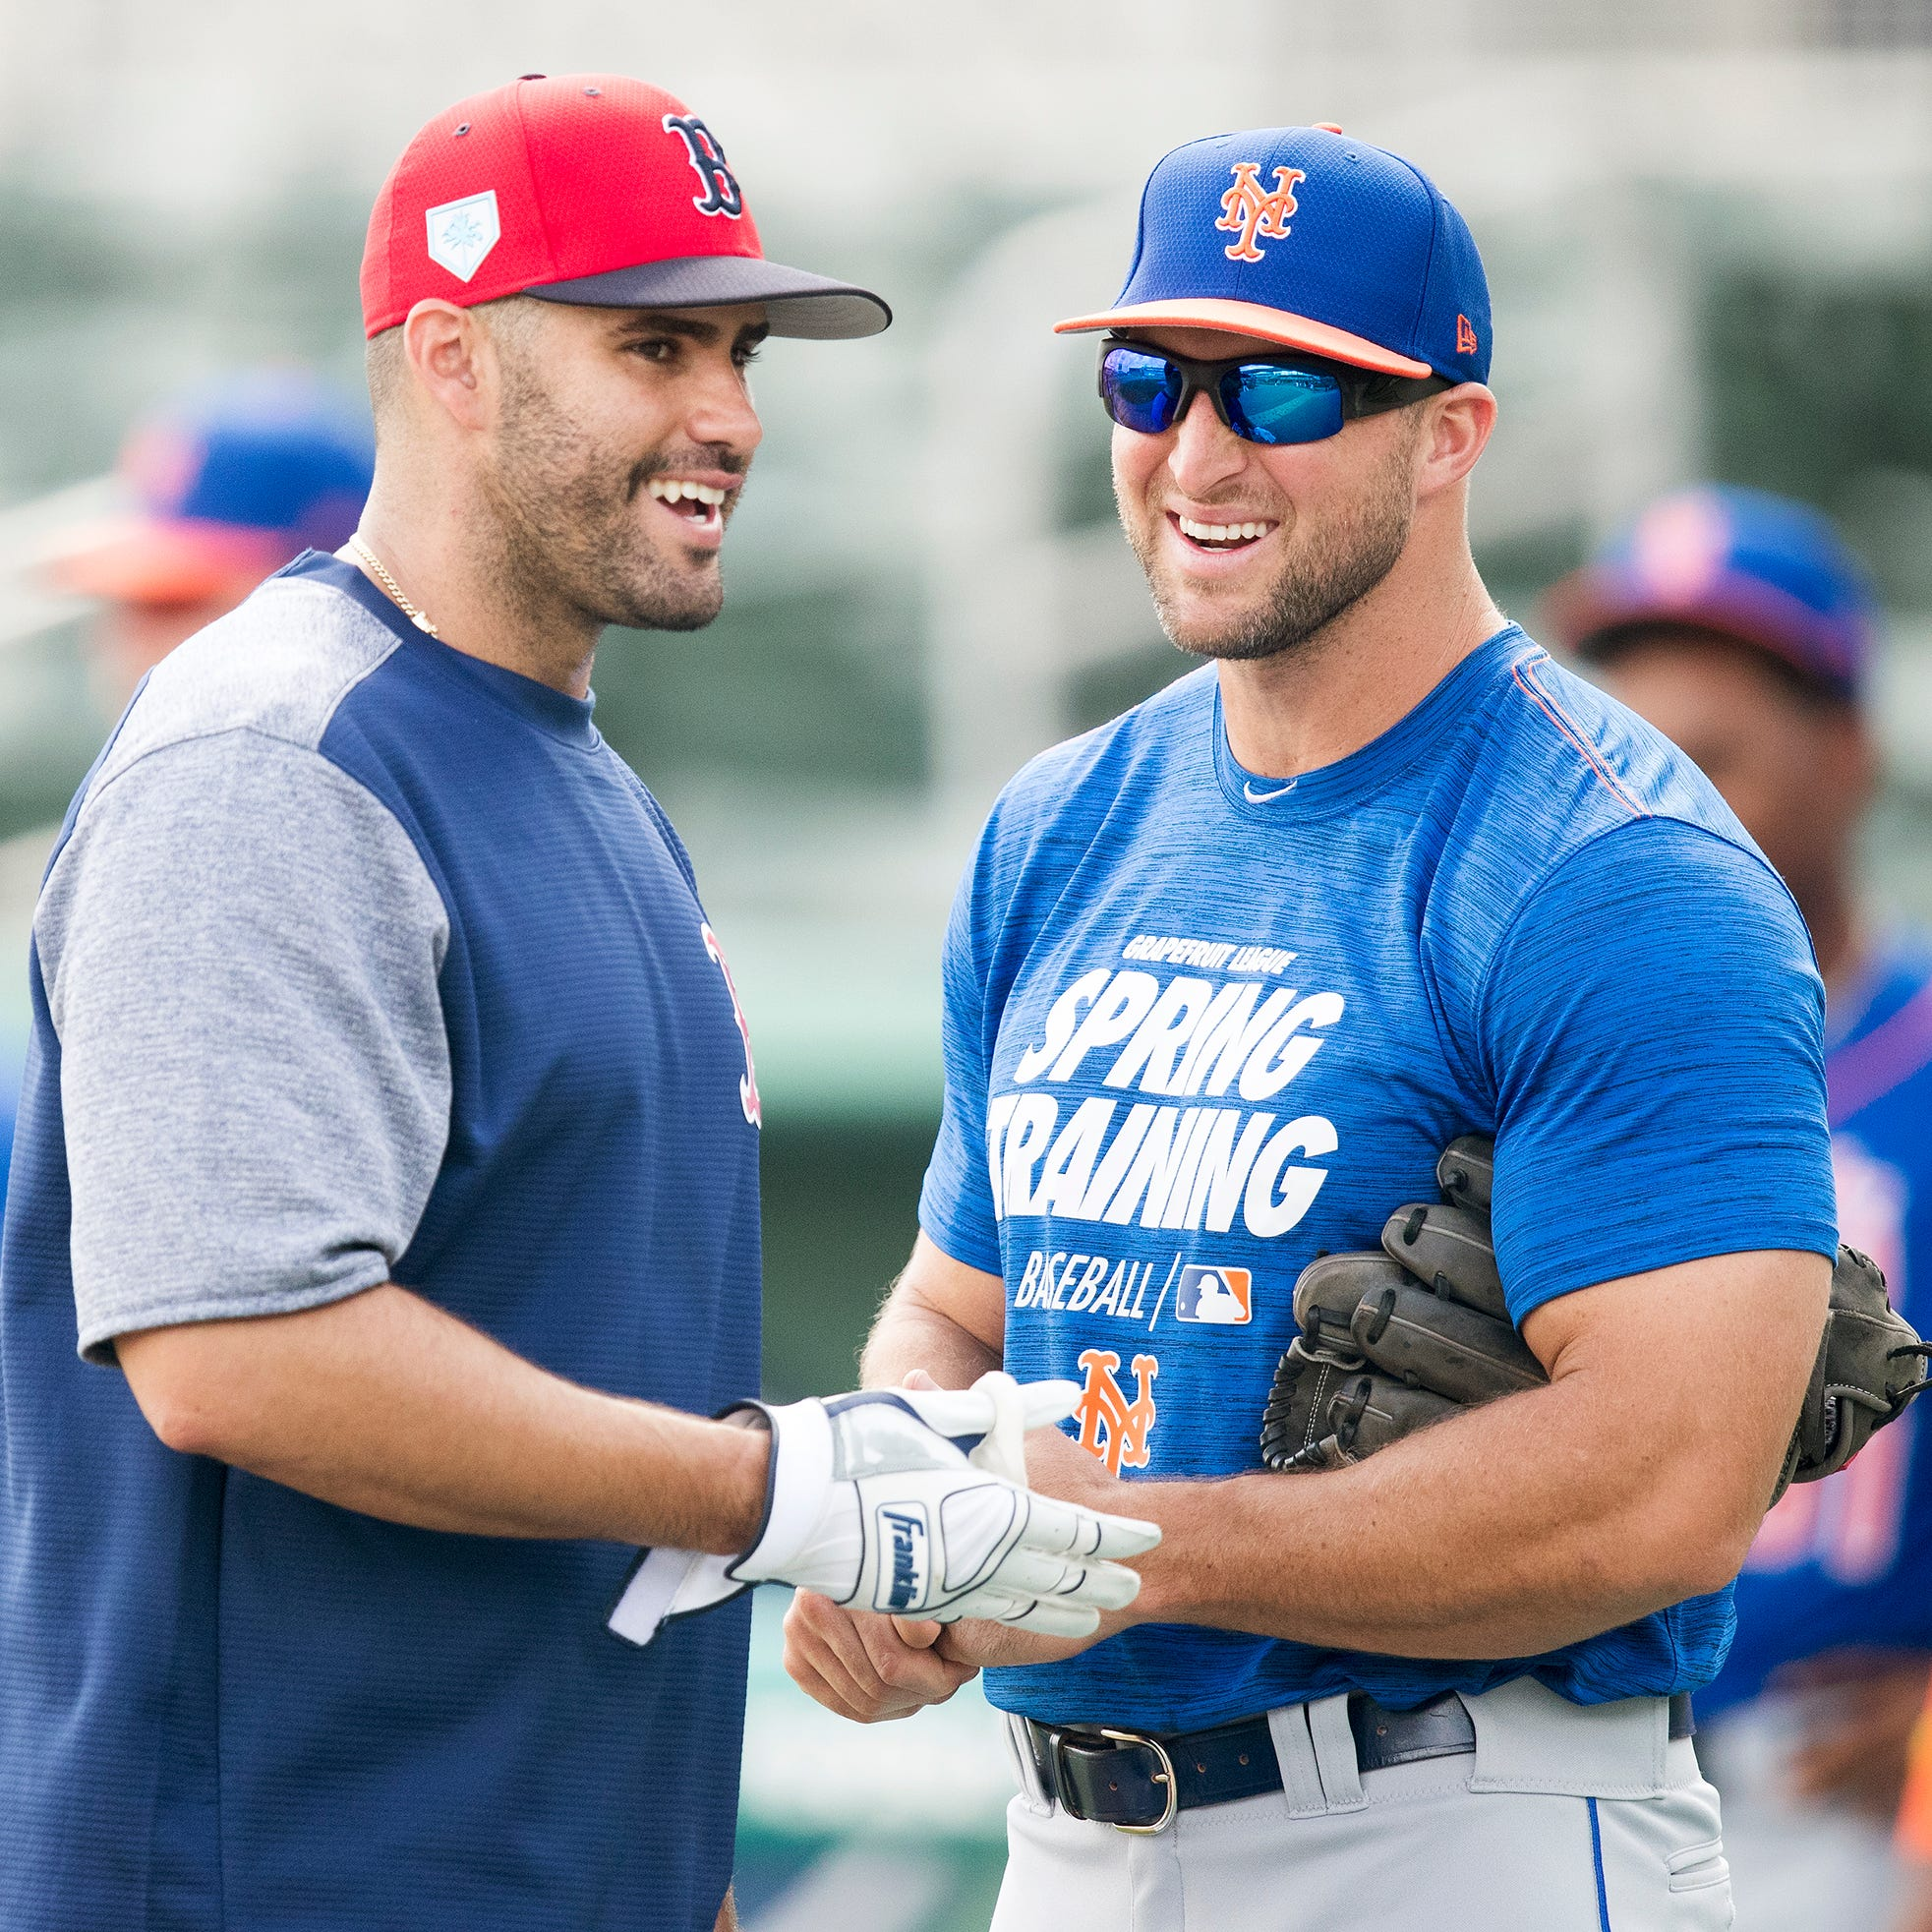 Former Gators football star Tim Tebow continues baseball journey with Mets at JetBlue Park